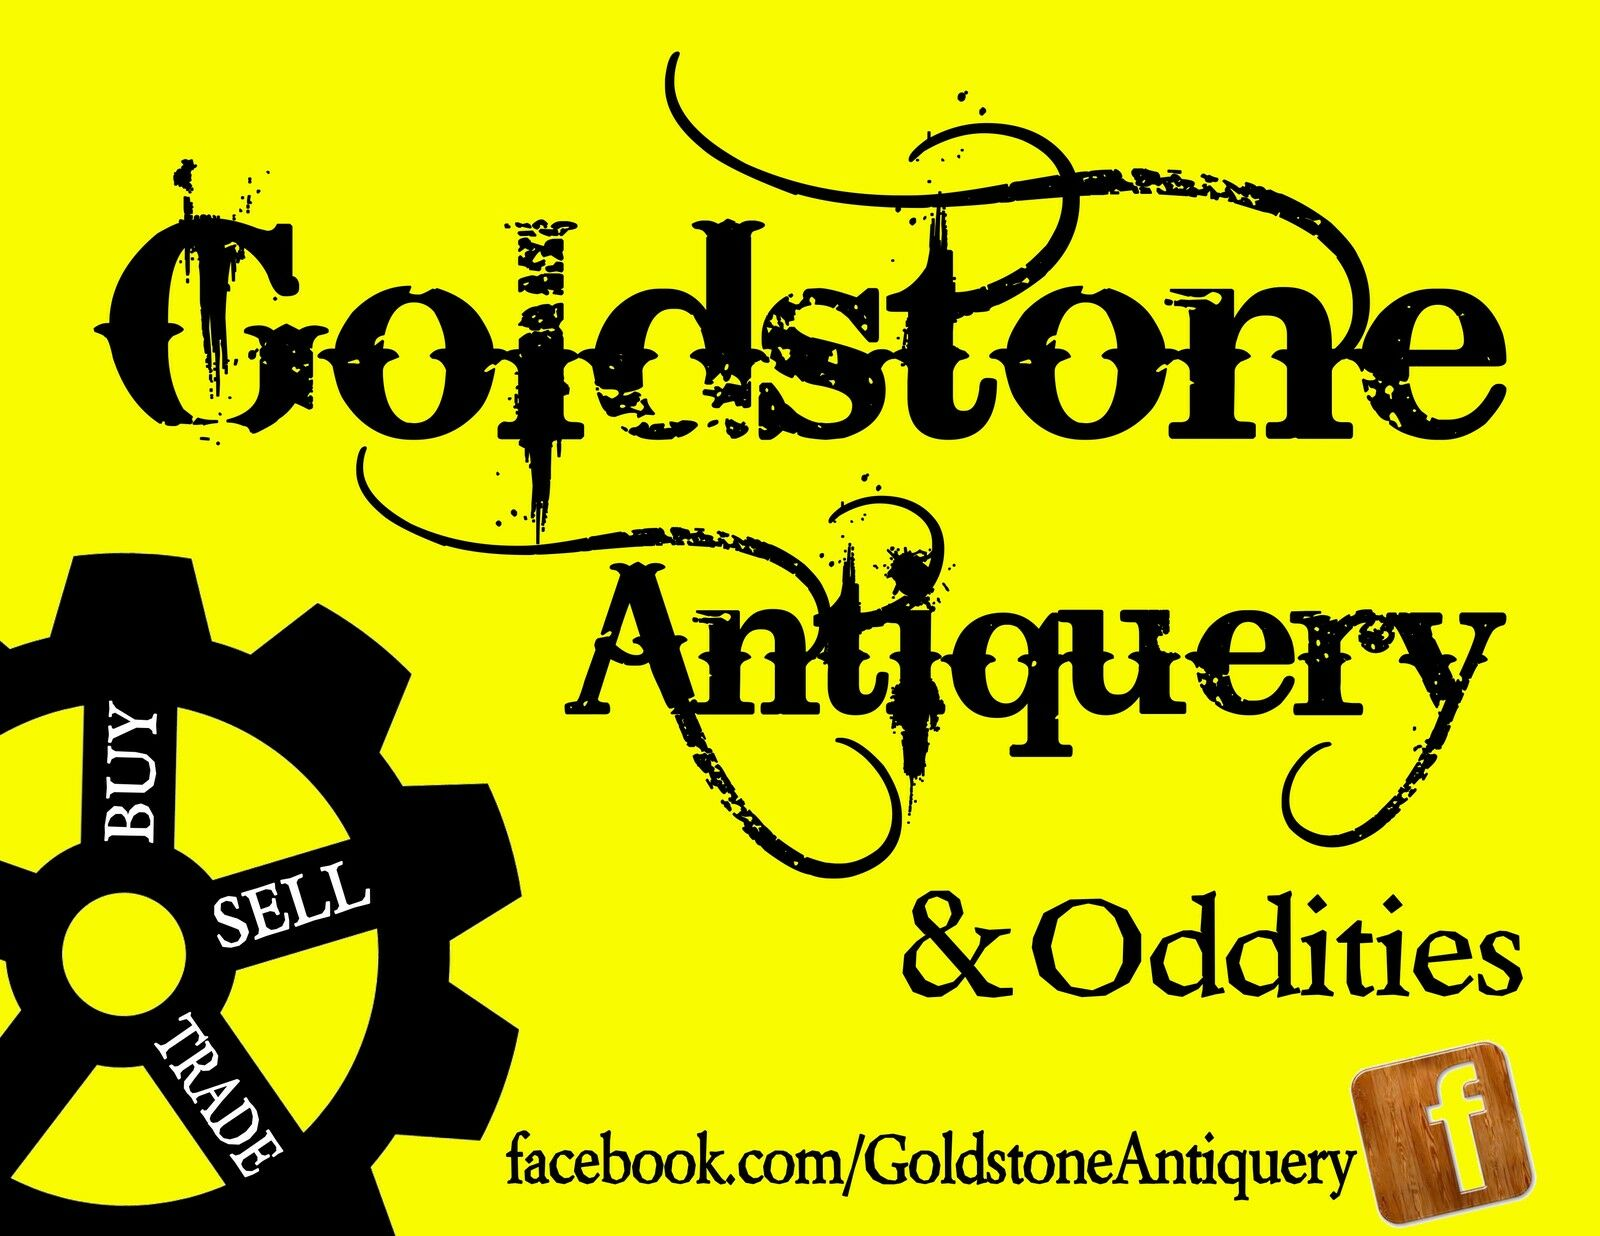 Goldstone Antiquery and Oddities